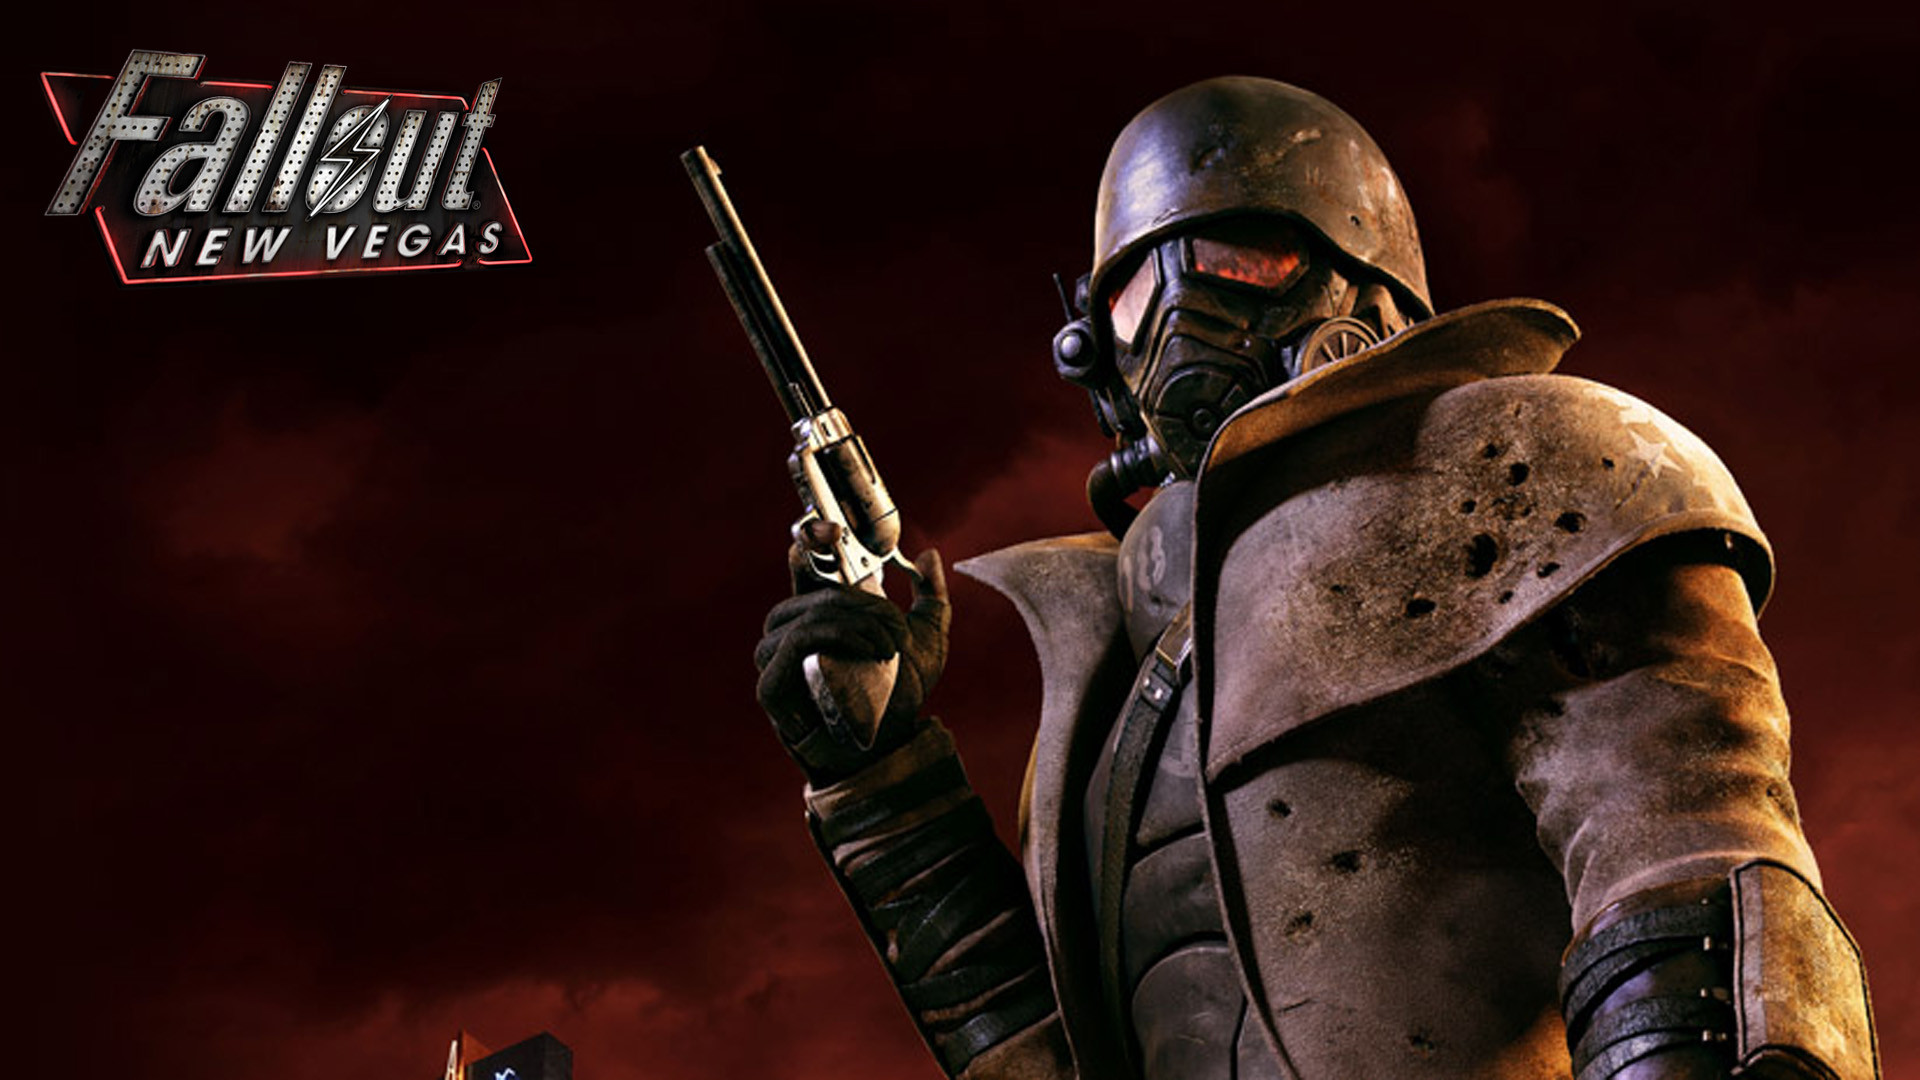 video Games Fallout New Vegas Wallpapers HD Desktop and Mobile   HD  Wallpapers   Pinterest   Fallout, Hd wallpaper and Wallpaper